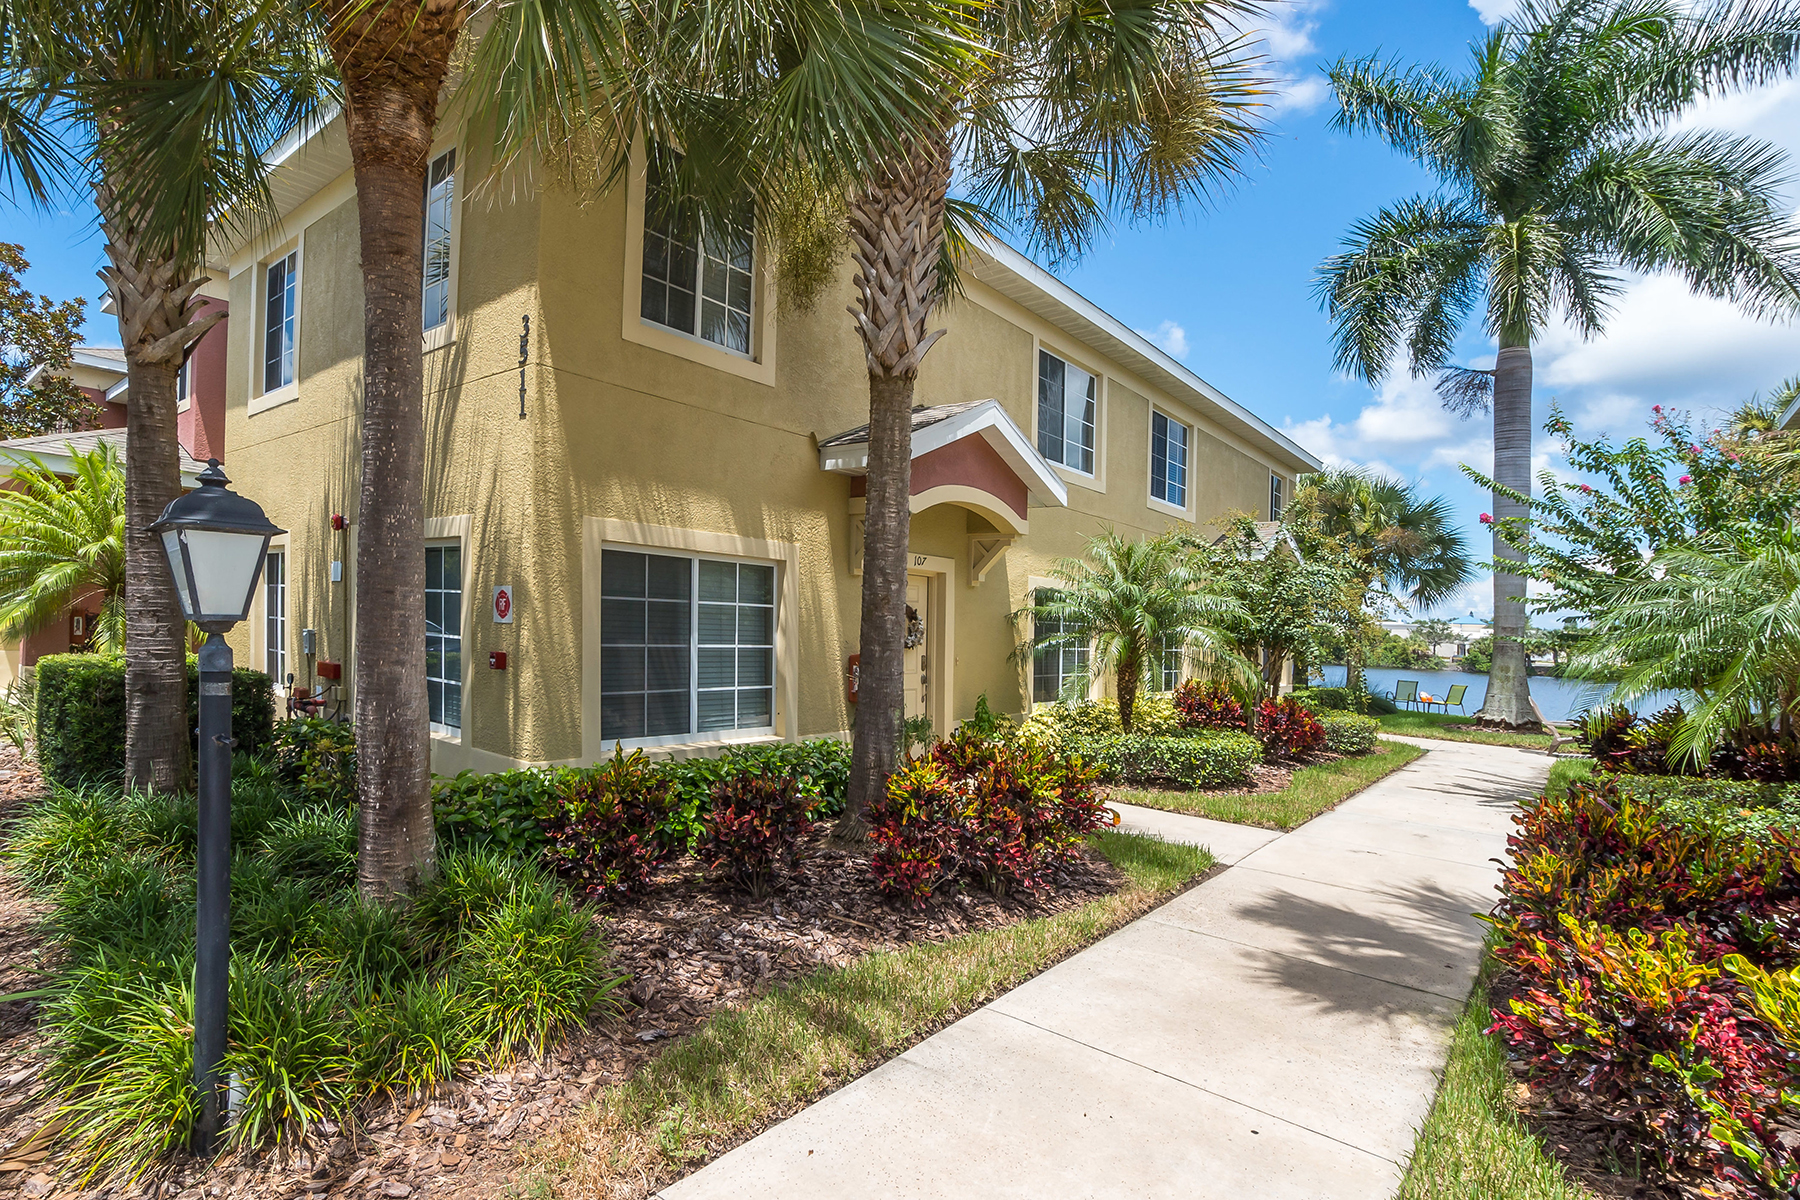 Townhouse for Sale at BRADENTON 3511 45th Terr W 108, Bradenton, Florida 34210 United States